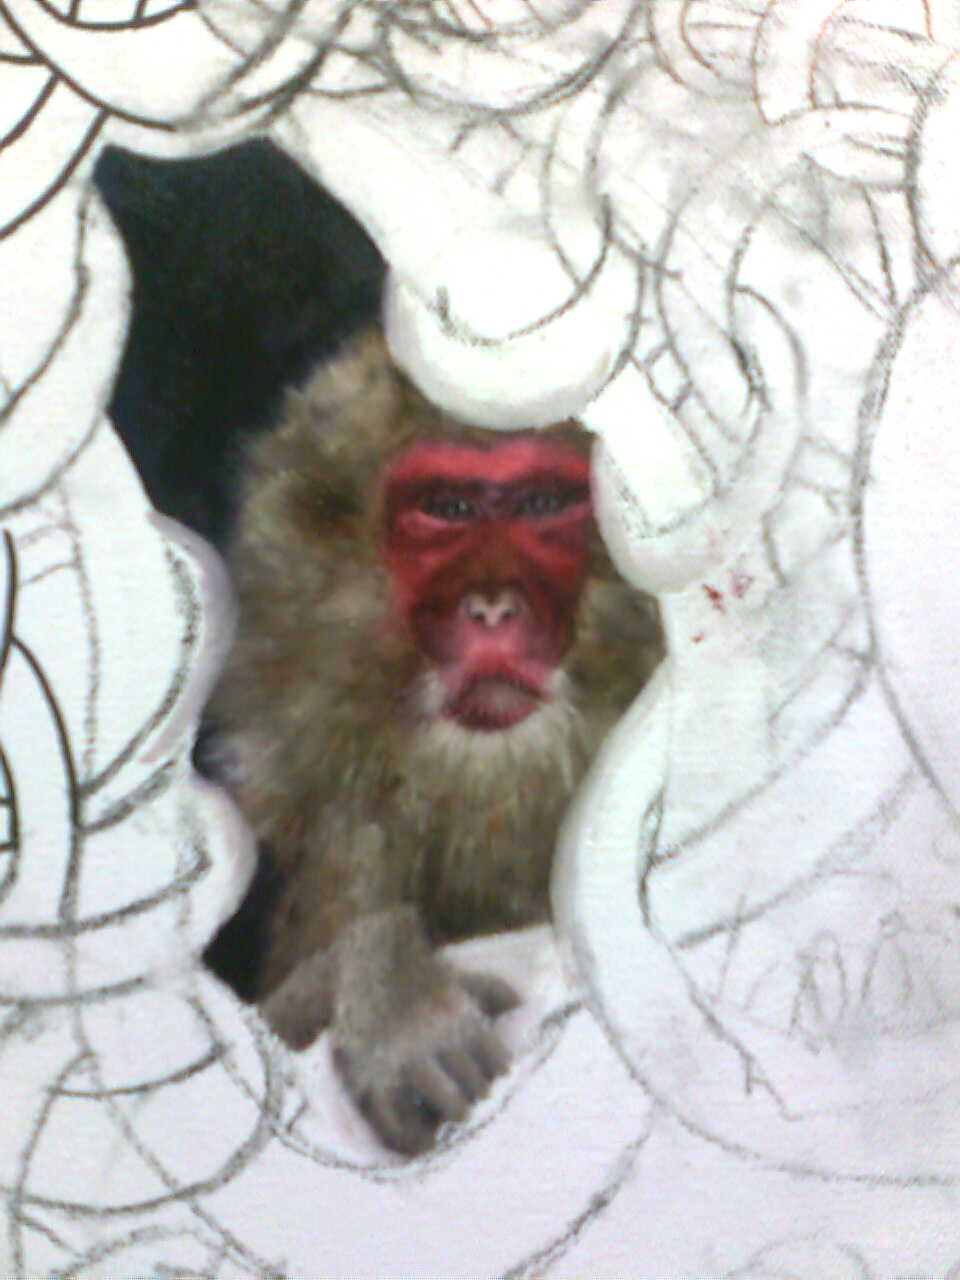 CLOSE UP OF THE SNOW MONKEY IN THE PAINTING, ZAZA FEARLESS RIDES INTO THE UNIVERSE, BY ELIZA FURMANSKY